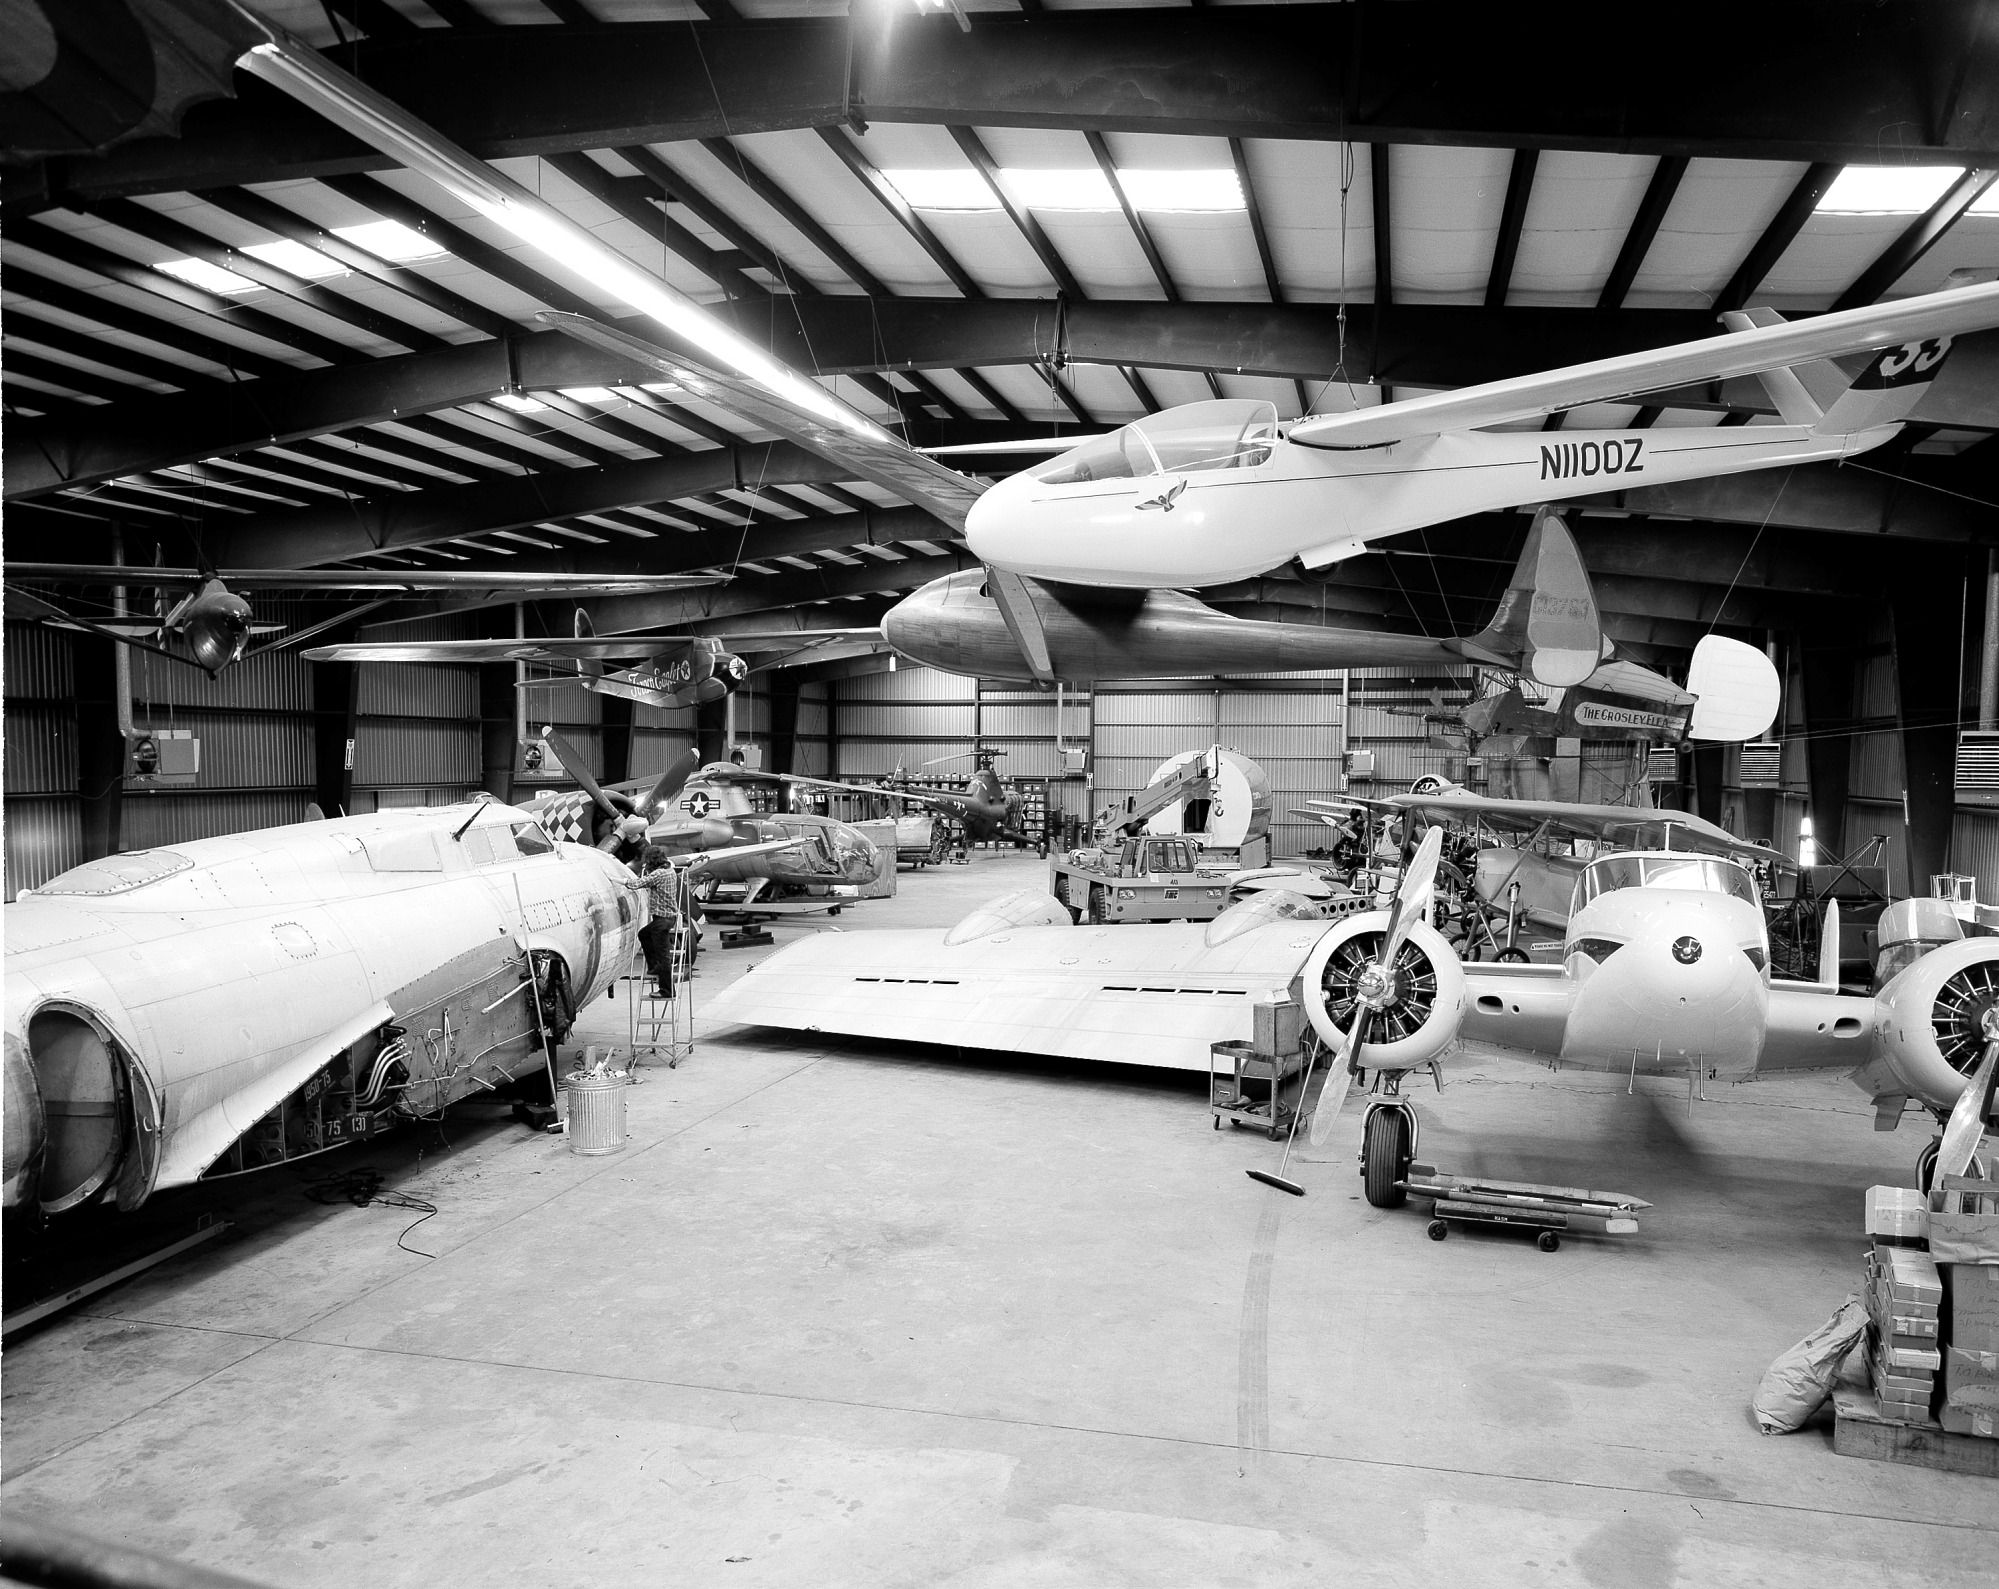 Aircraft at the Garber Facility